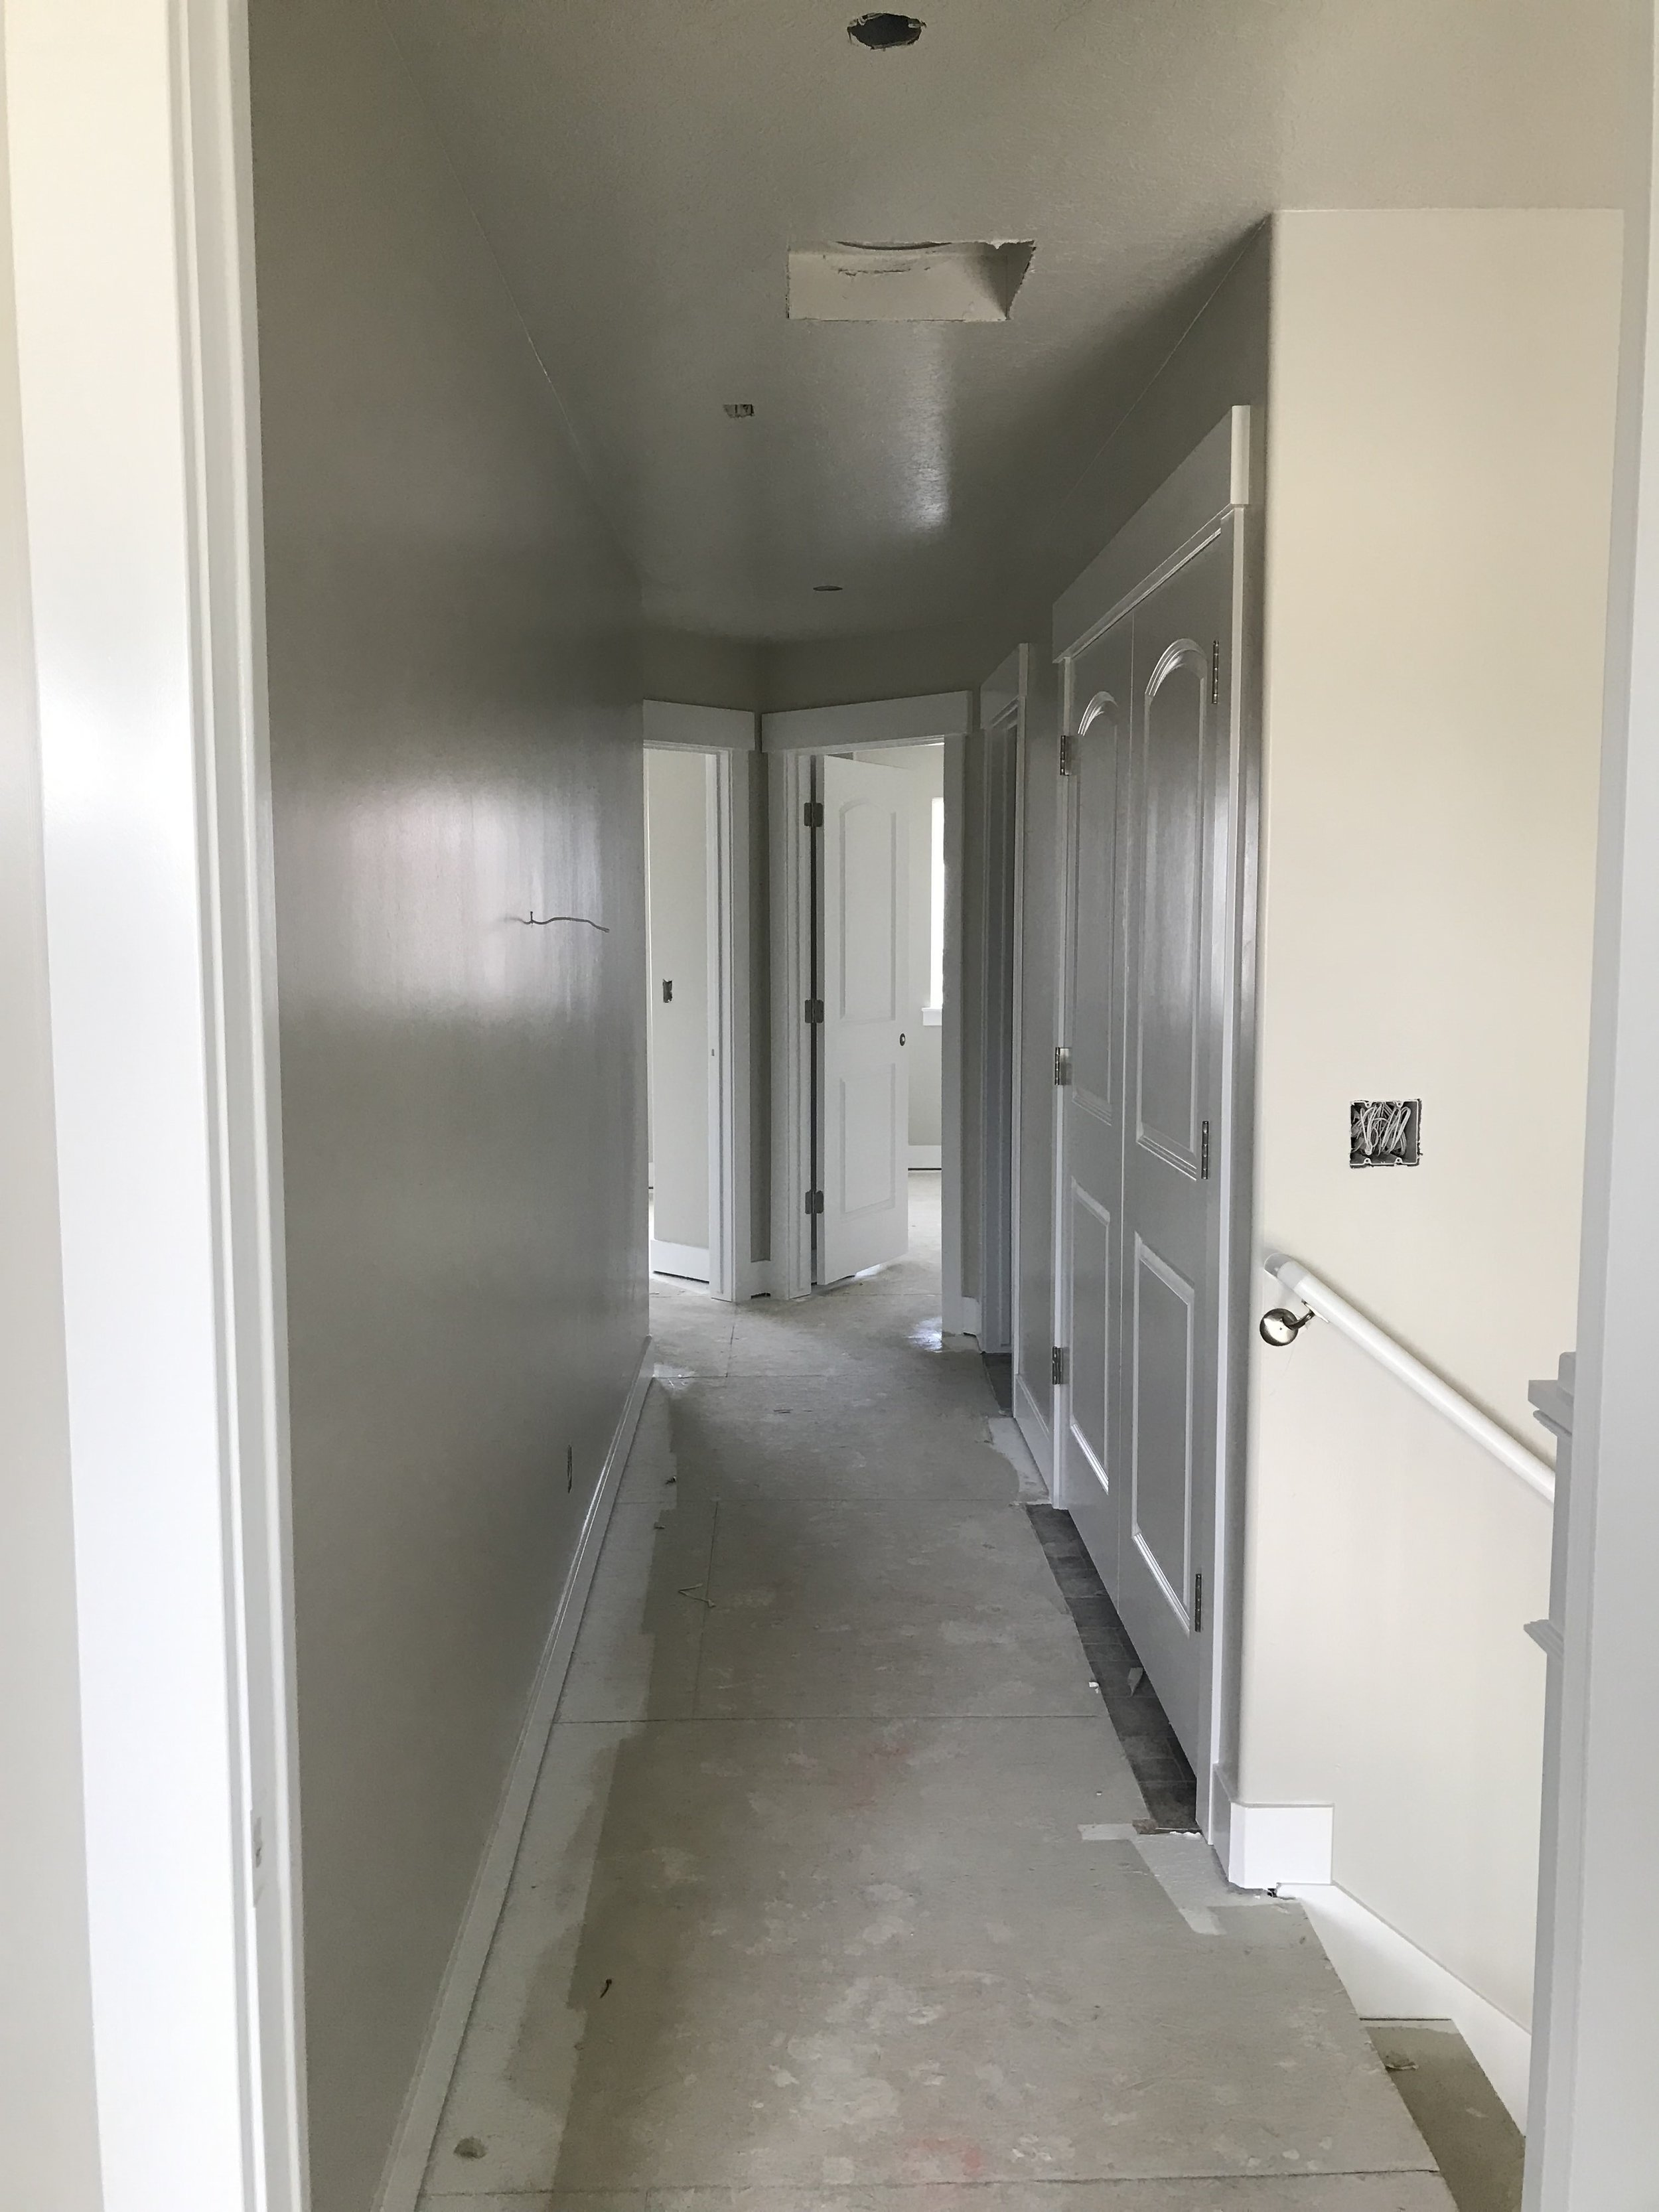 View of the upstairs hallway after painting.